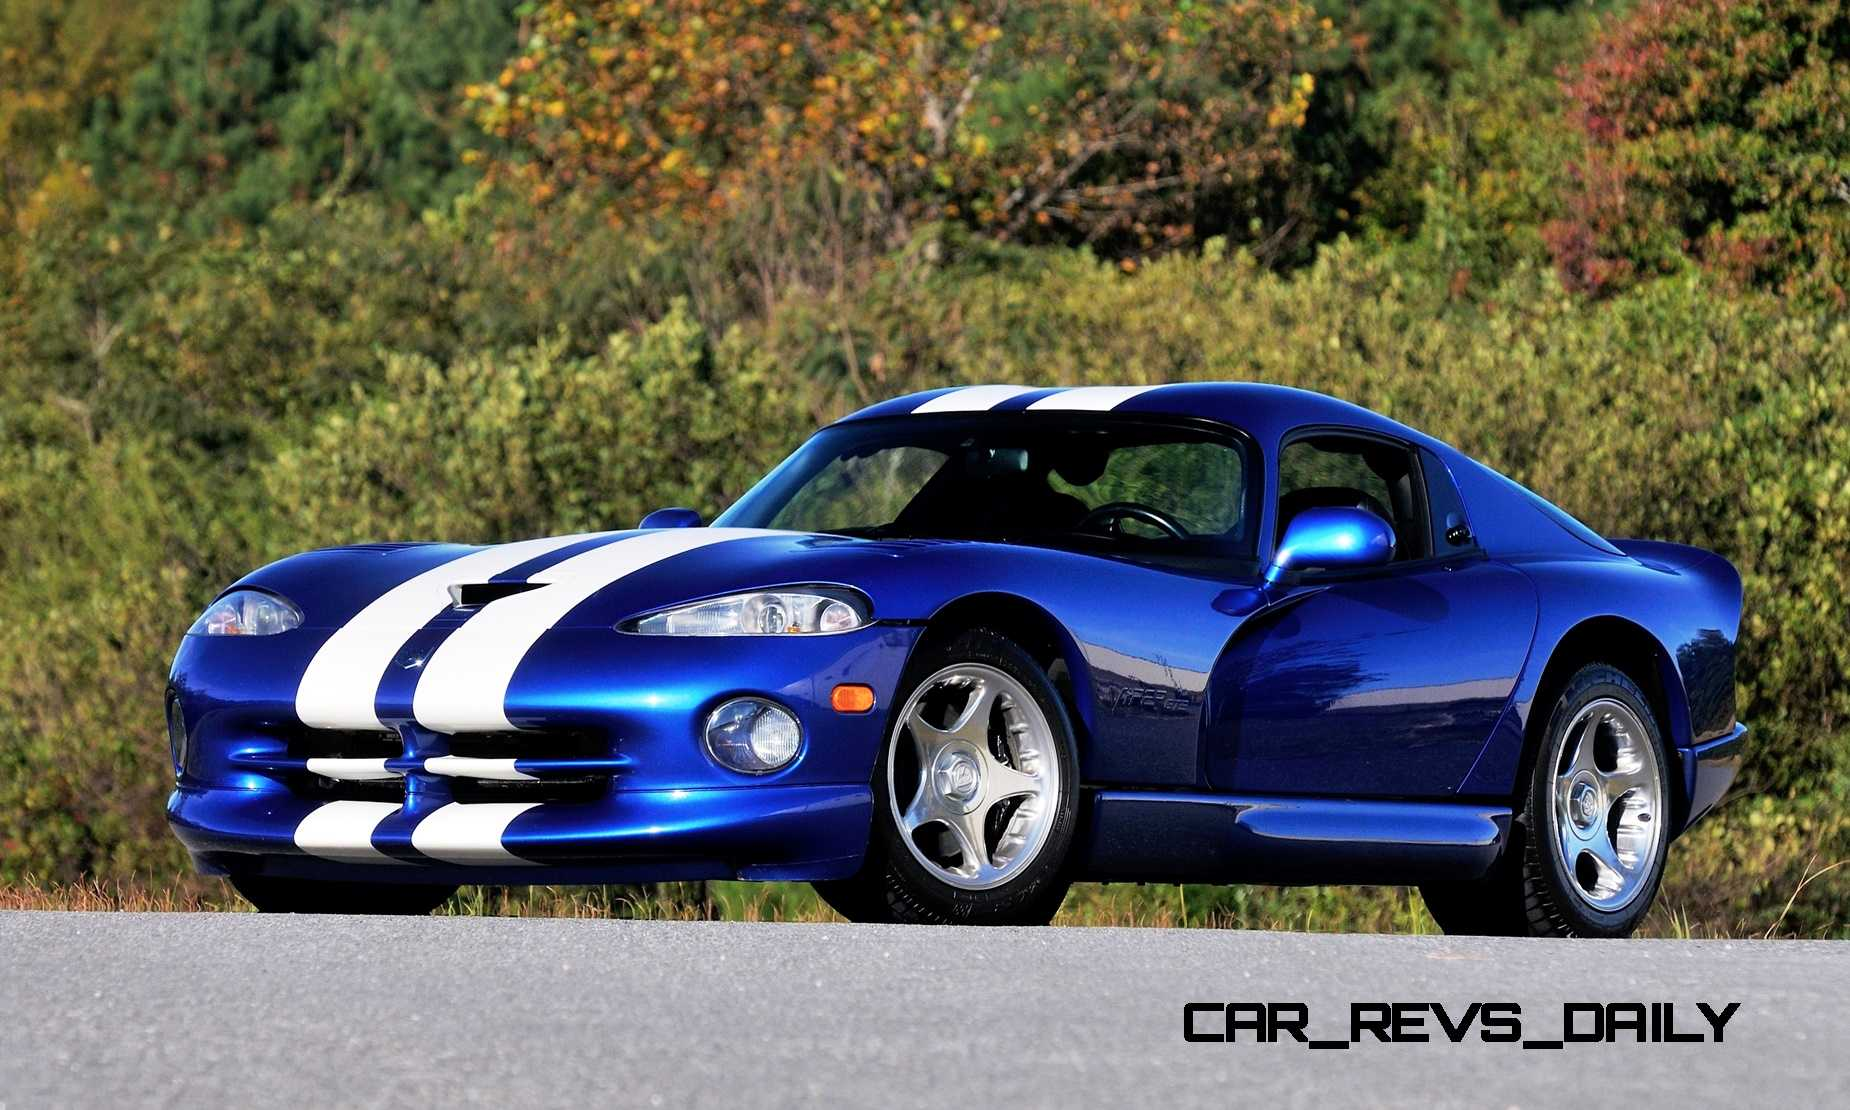 1996 Chrysler Viper #21